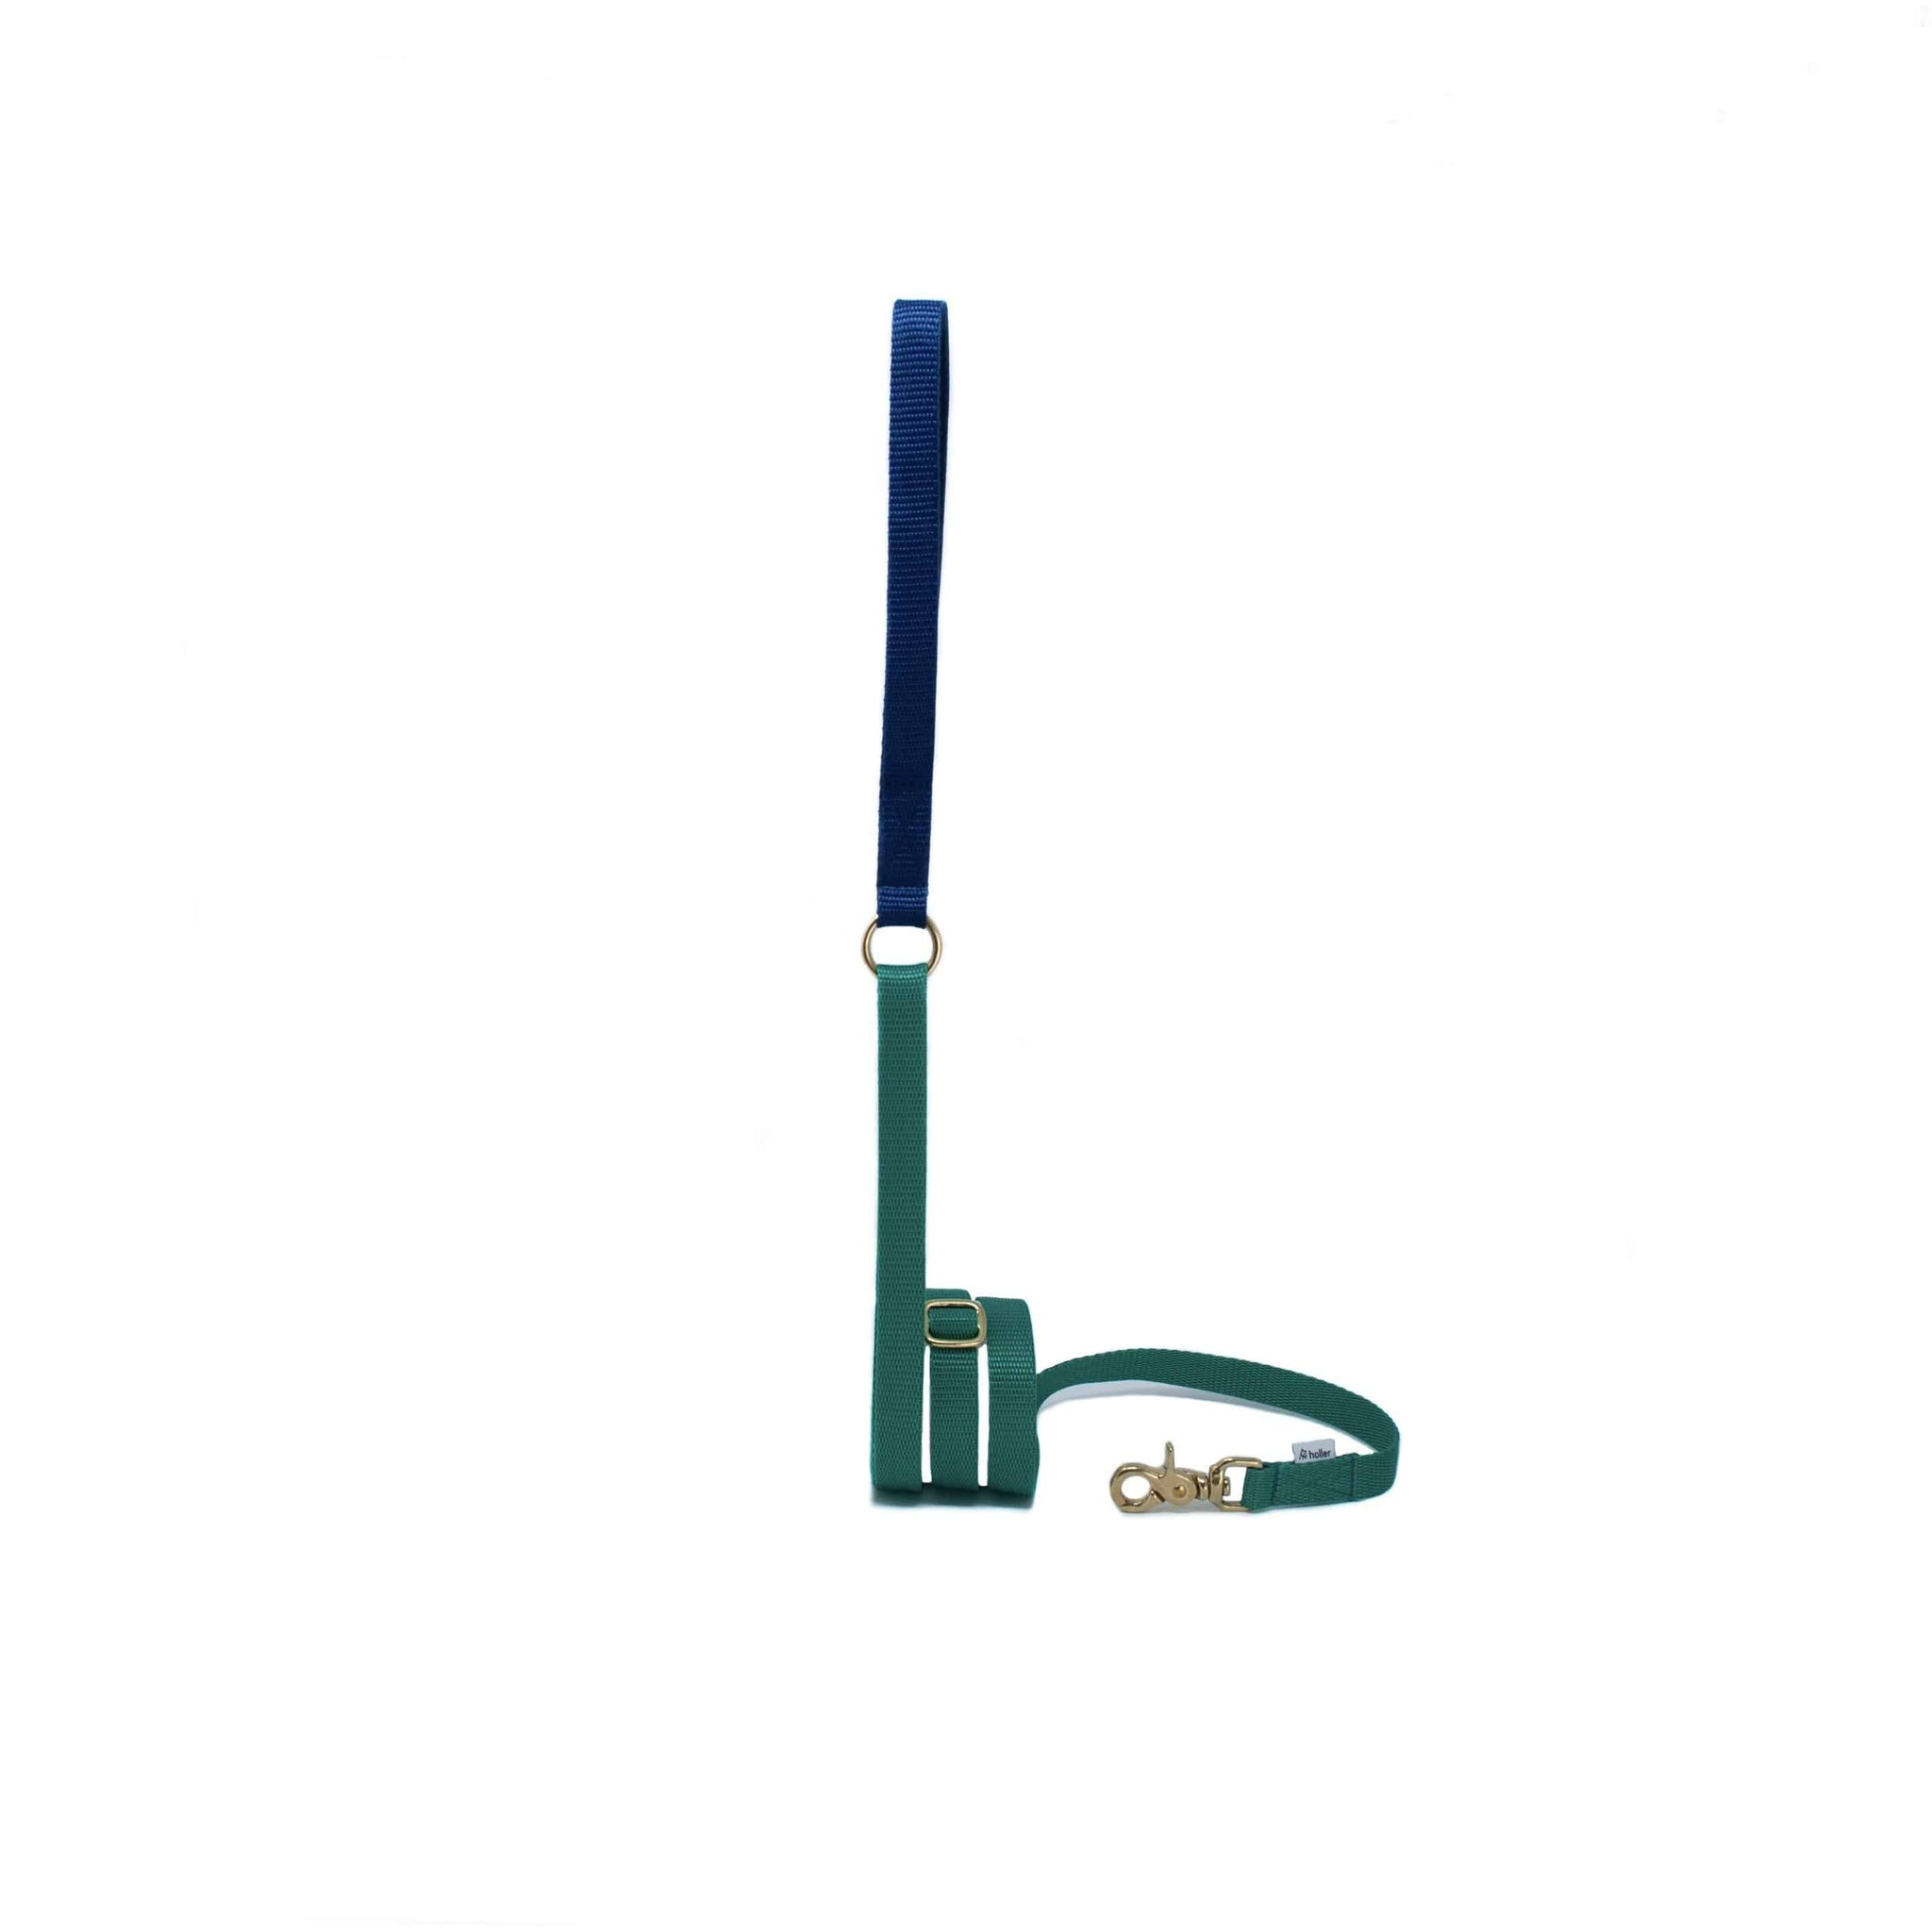 Holler - Extendable Lead - Emerald & Navy Fleece Lined Handle - Holler Brighton